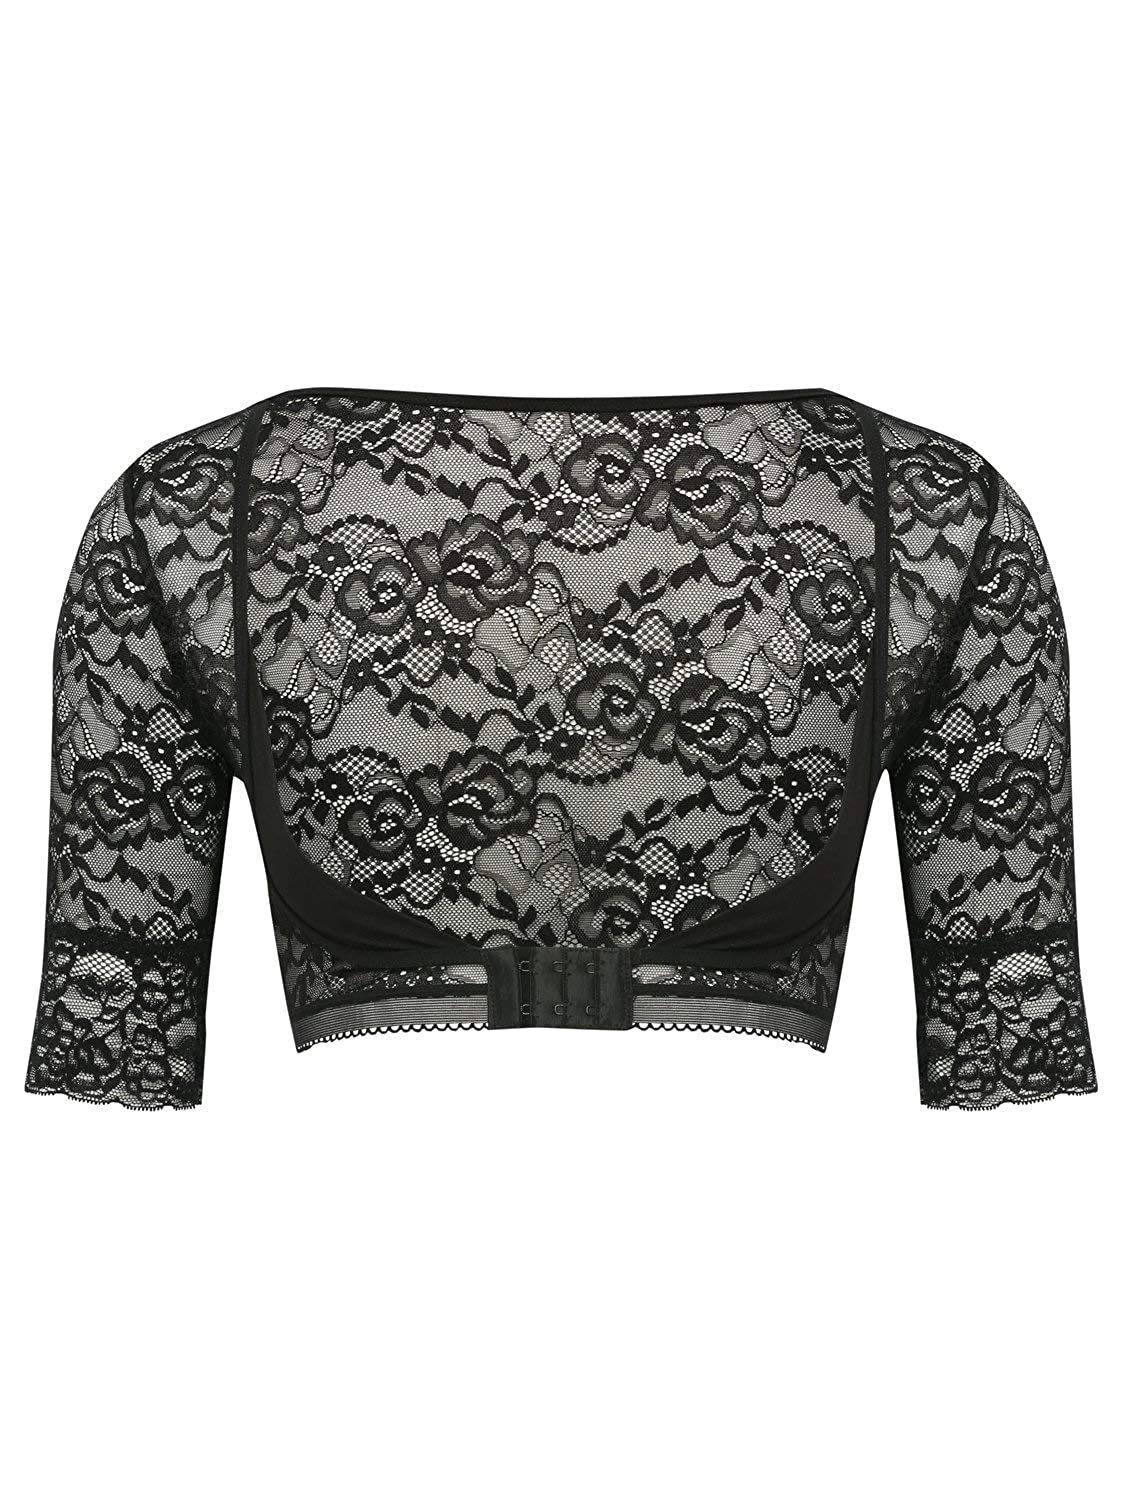 M& Co Ladies Sheer Lace Arm Cover Up